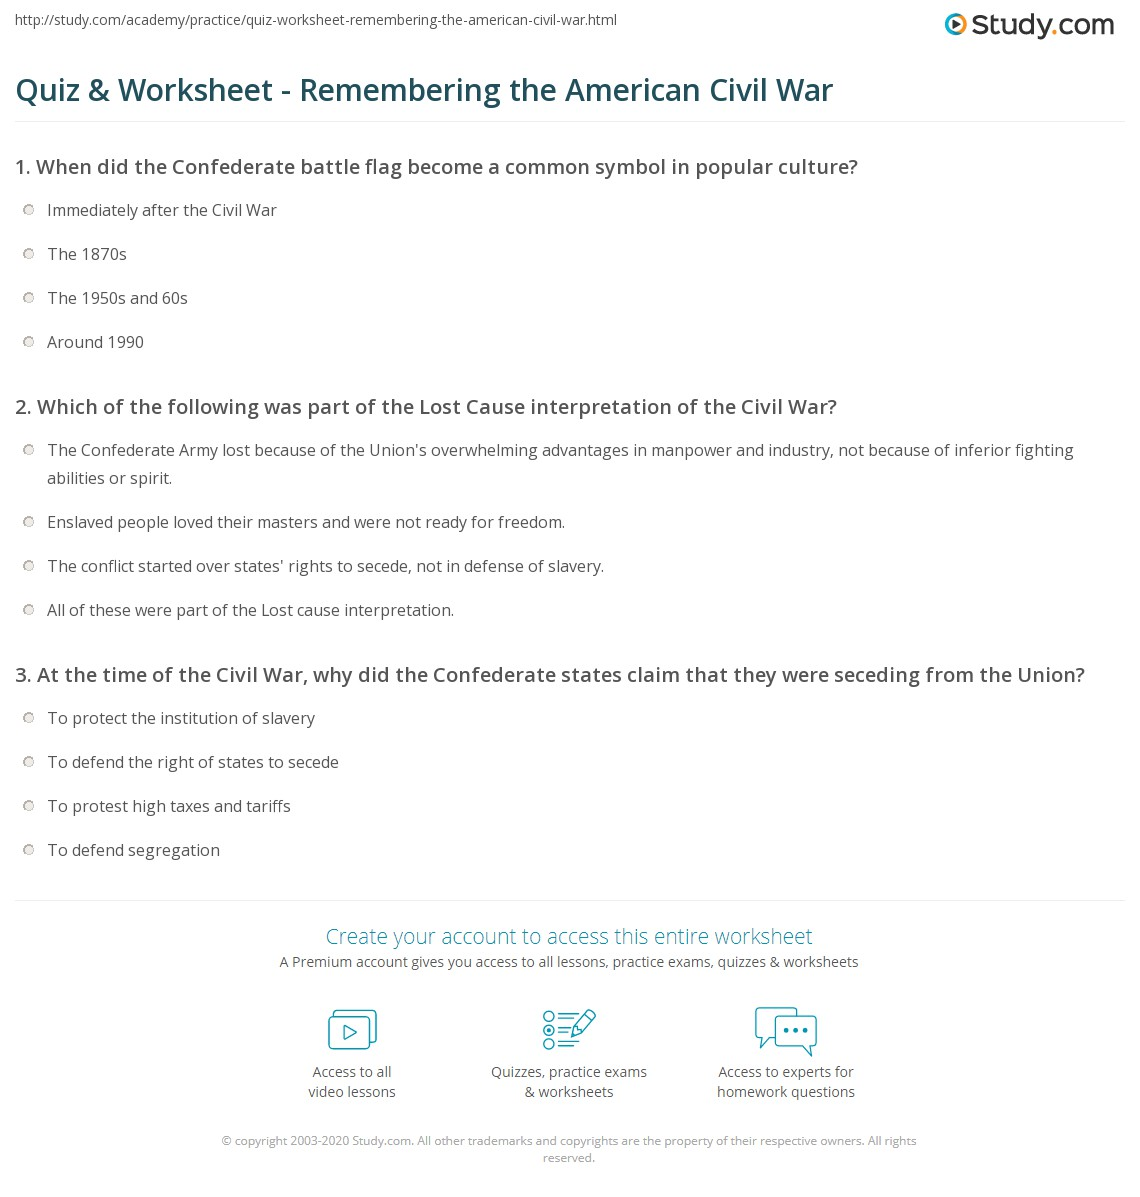 Quiz & Worksheet - Remembering the American Civil War | Study.com